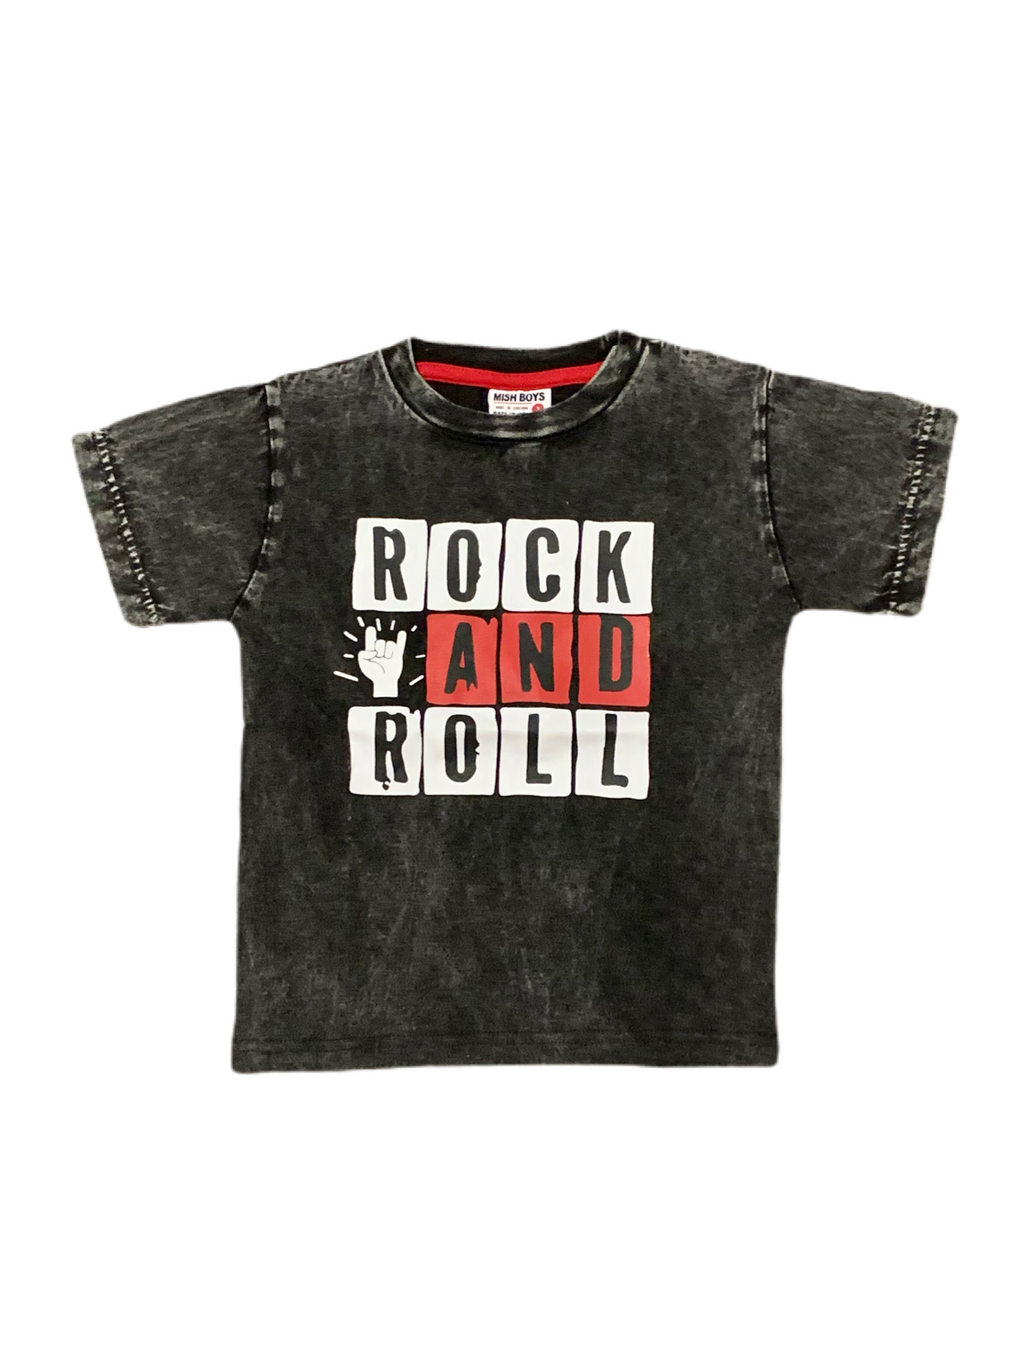 Mish Mish Black Rock and Roll Tee